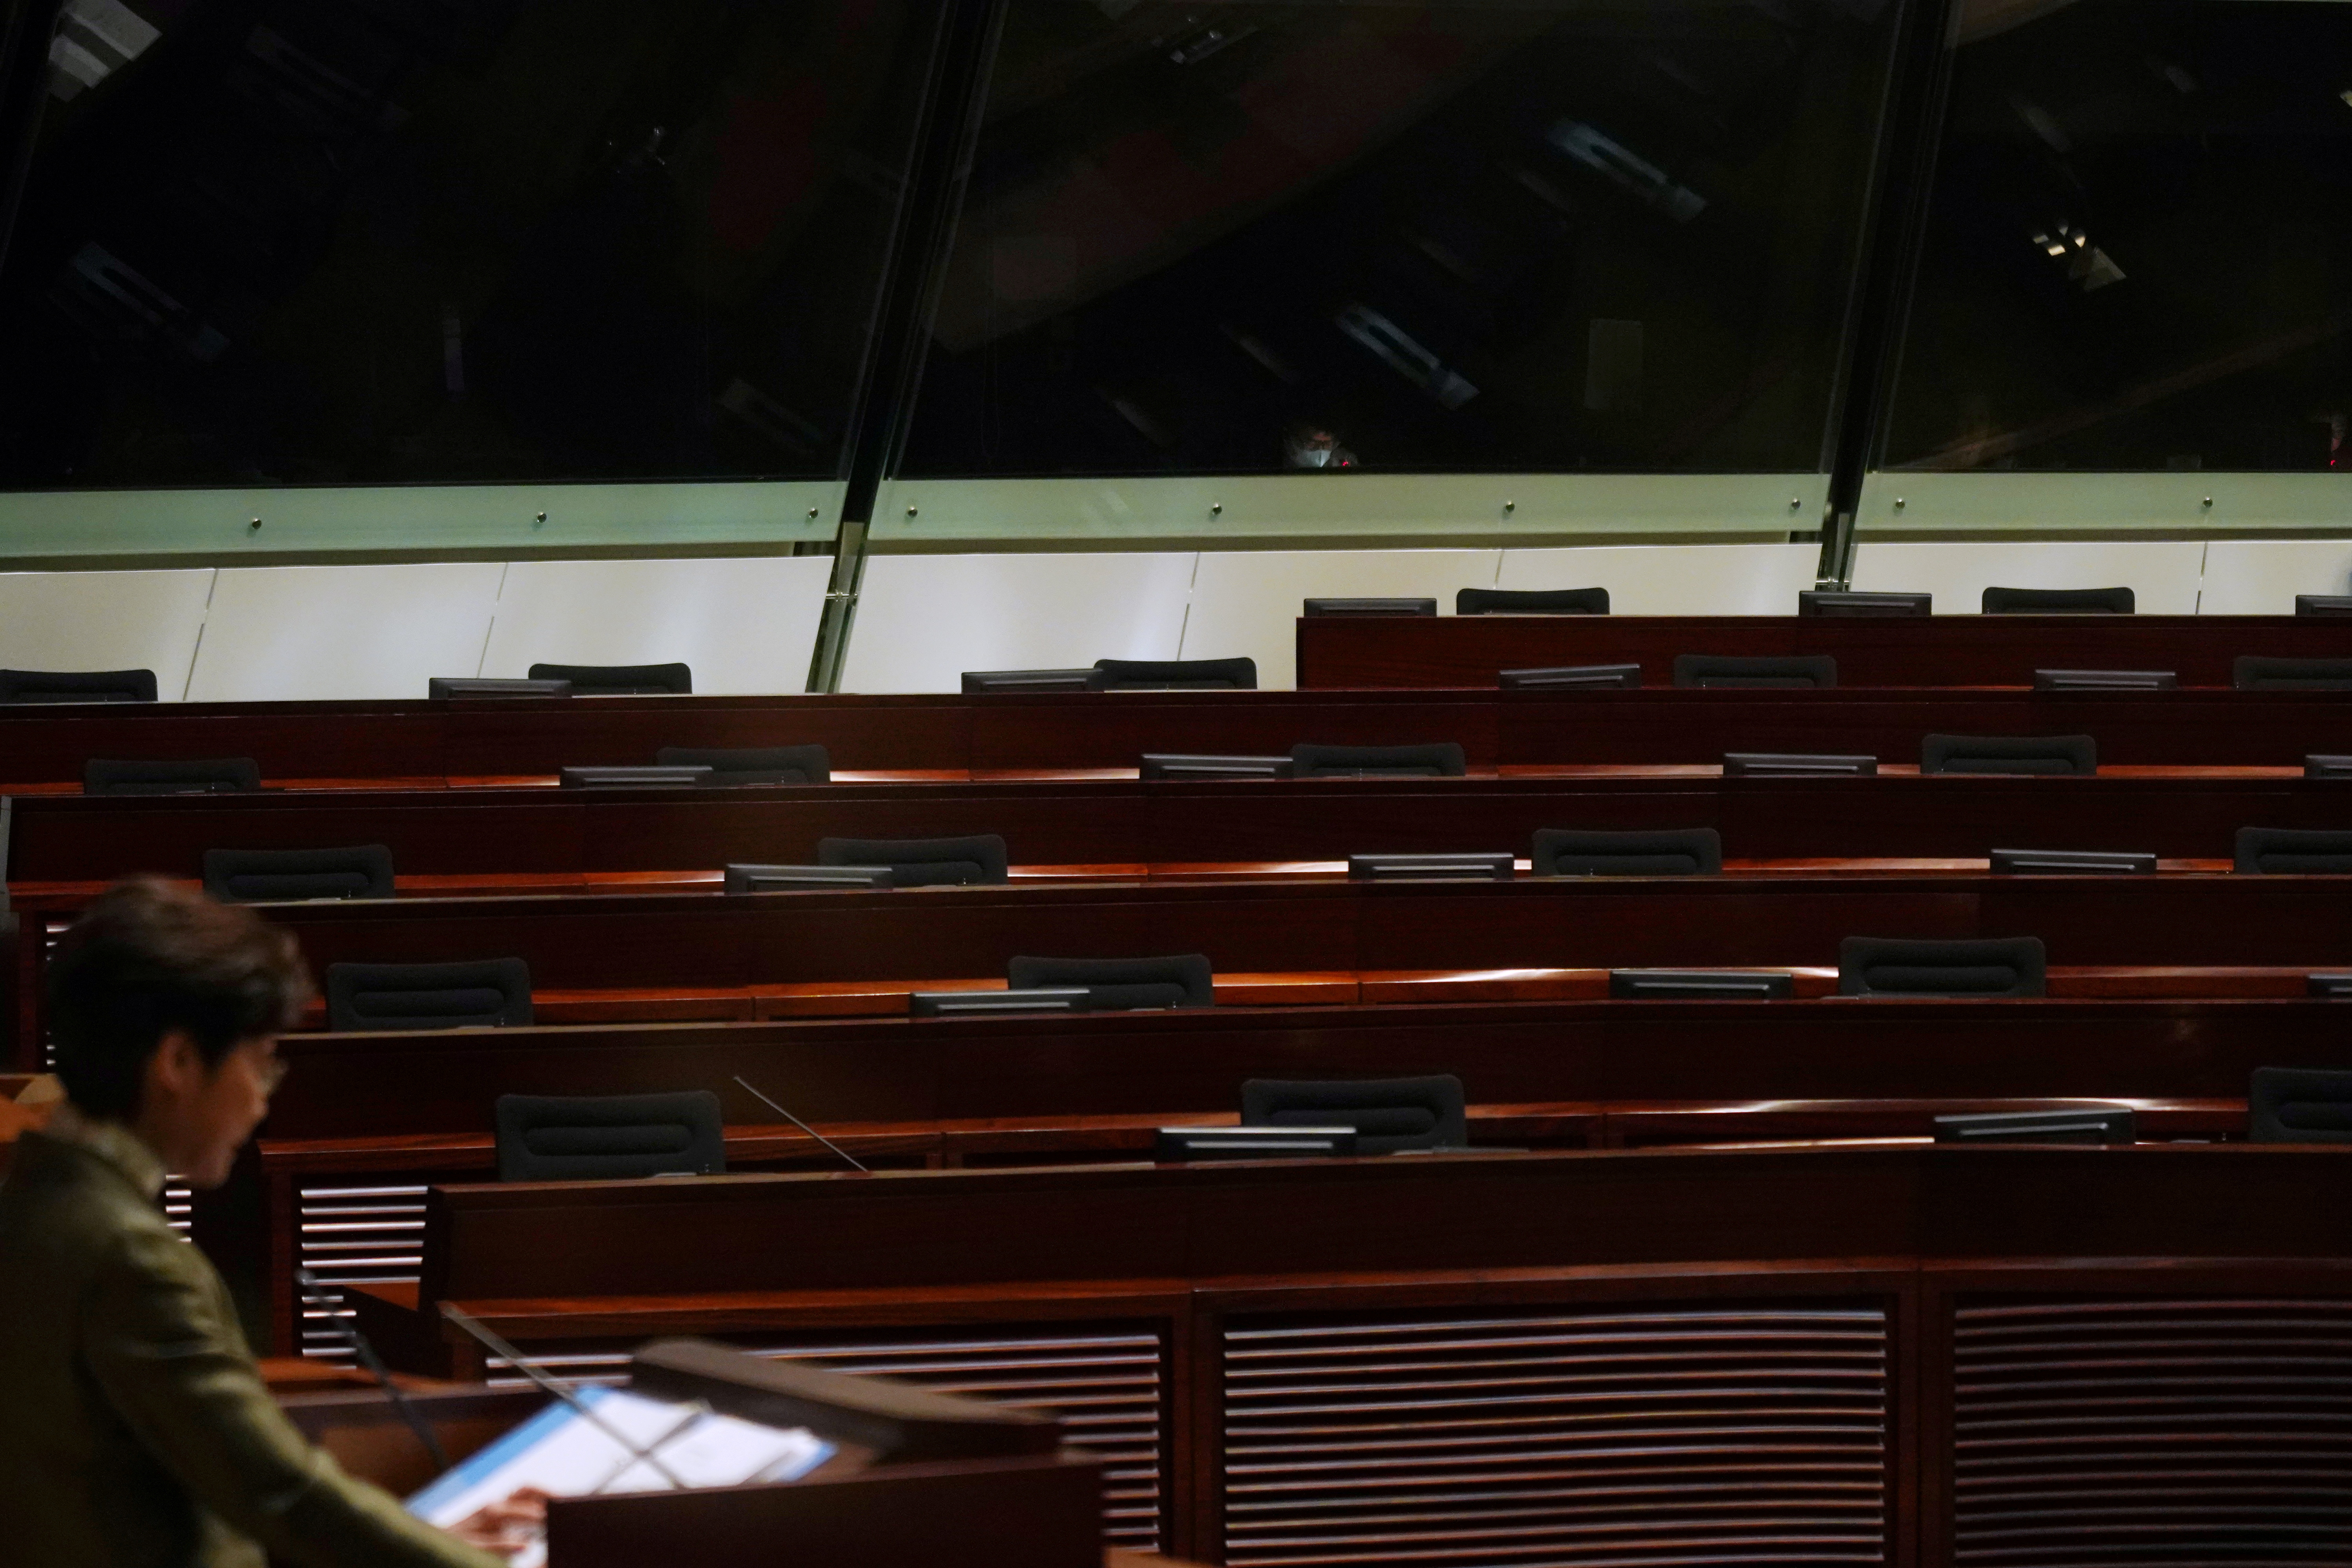 Empty seats of pro-democracy lawmakers are seen during Hong Kong Chief Executive Carrie Lam's annual policy address at the Legislative Council in Hong Kong, China November 25, 2020. REUTERS/Lam Yik/File Photo